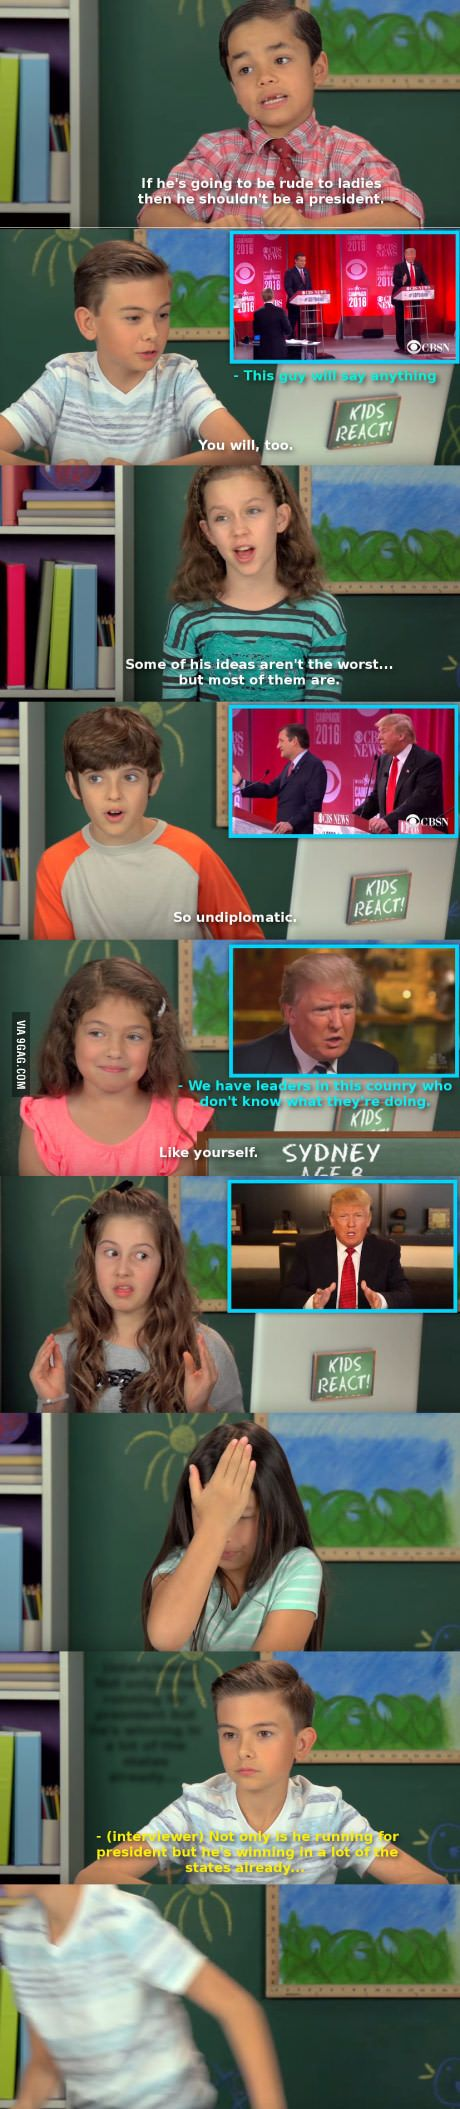 Kids React to Trump lol